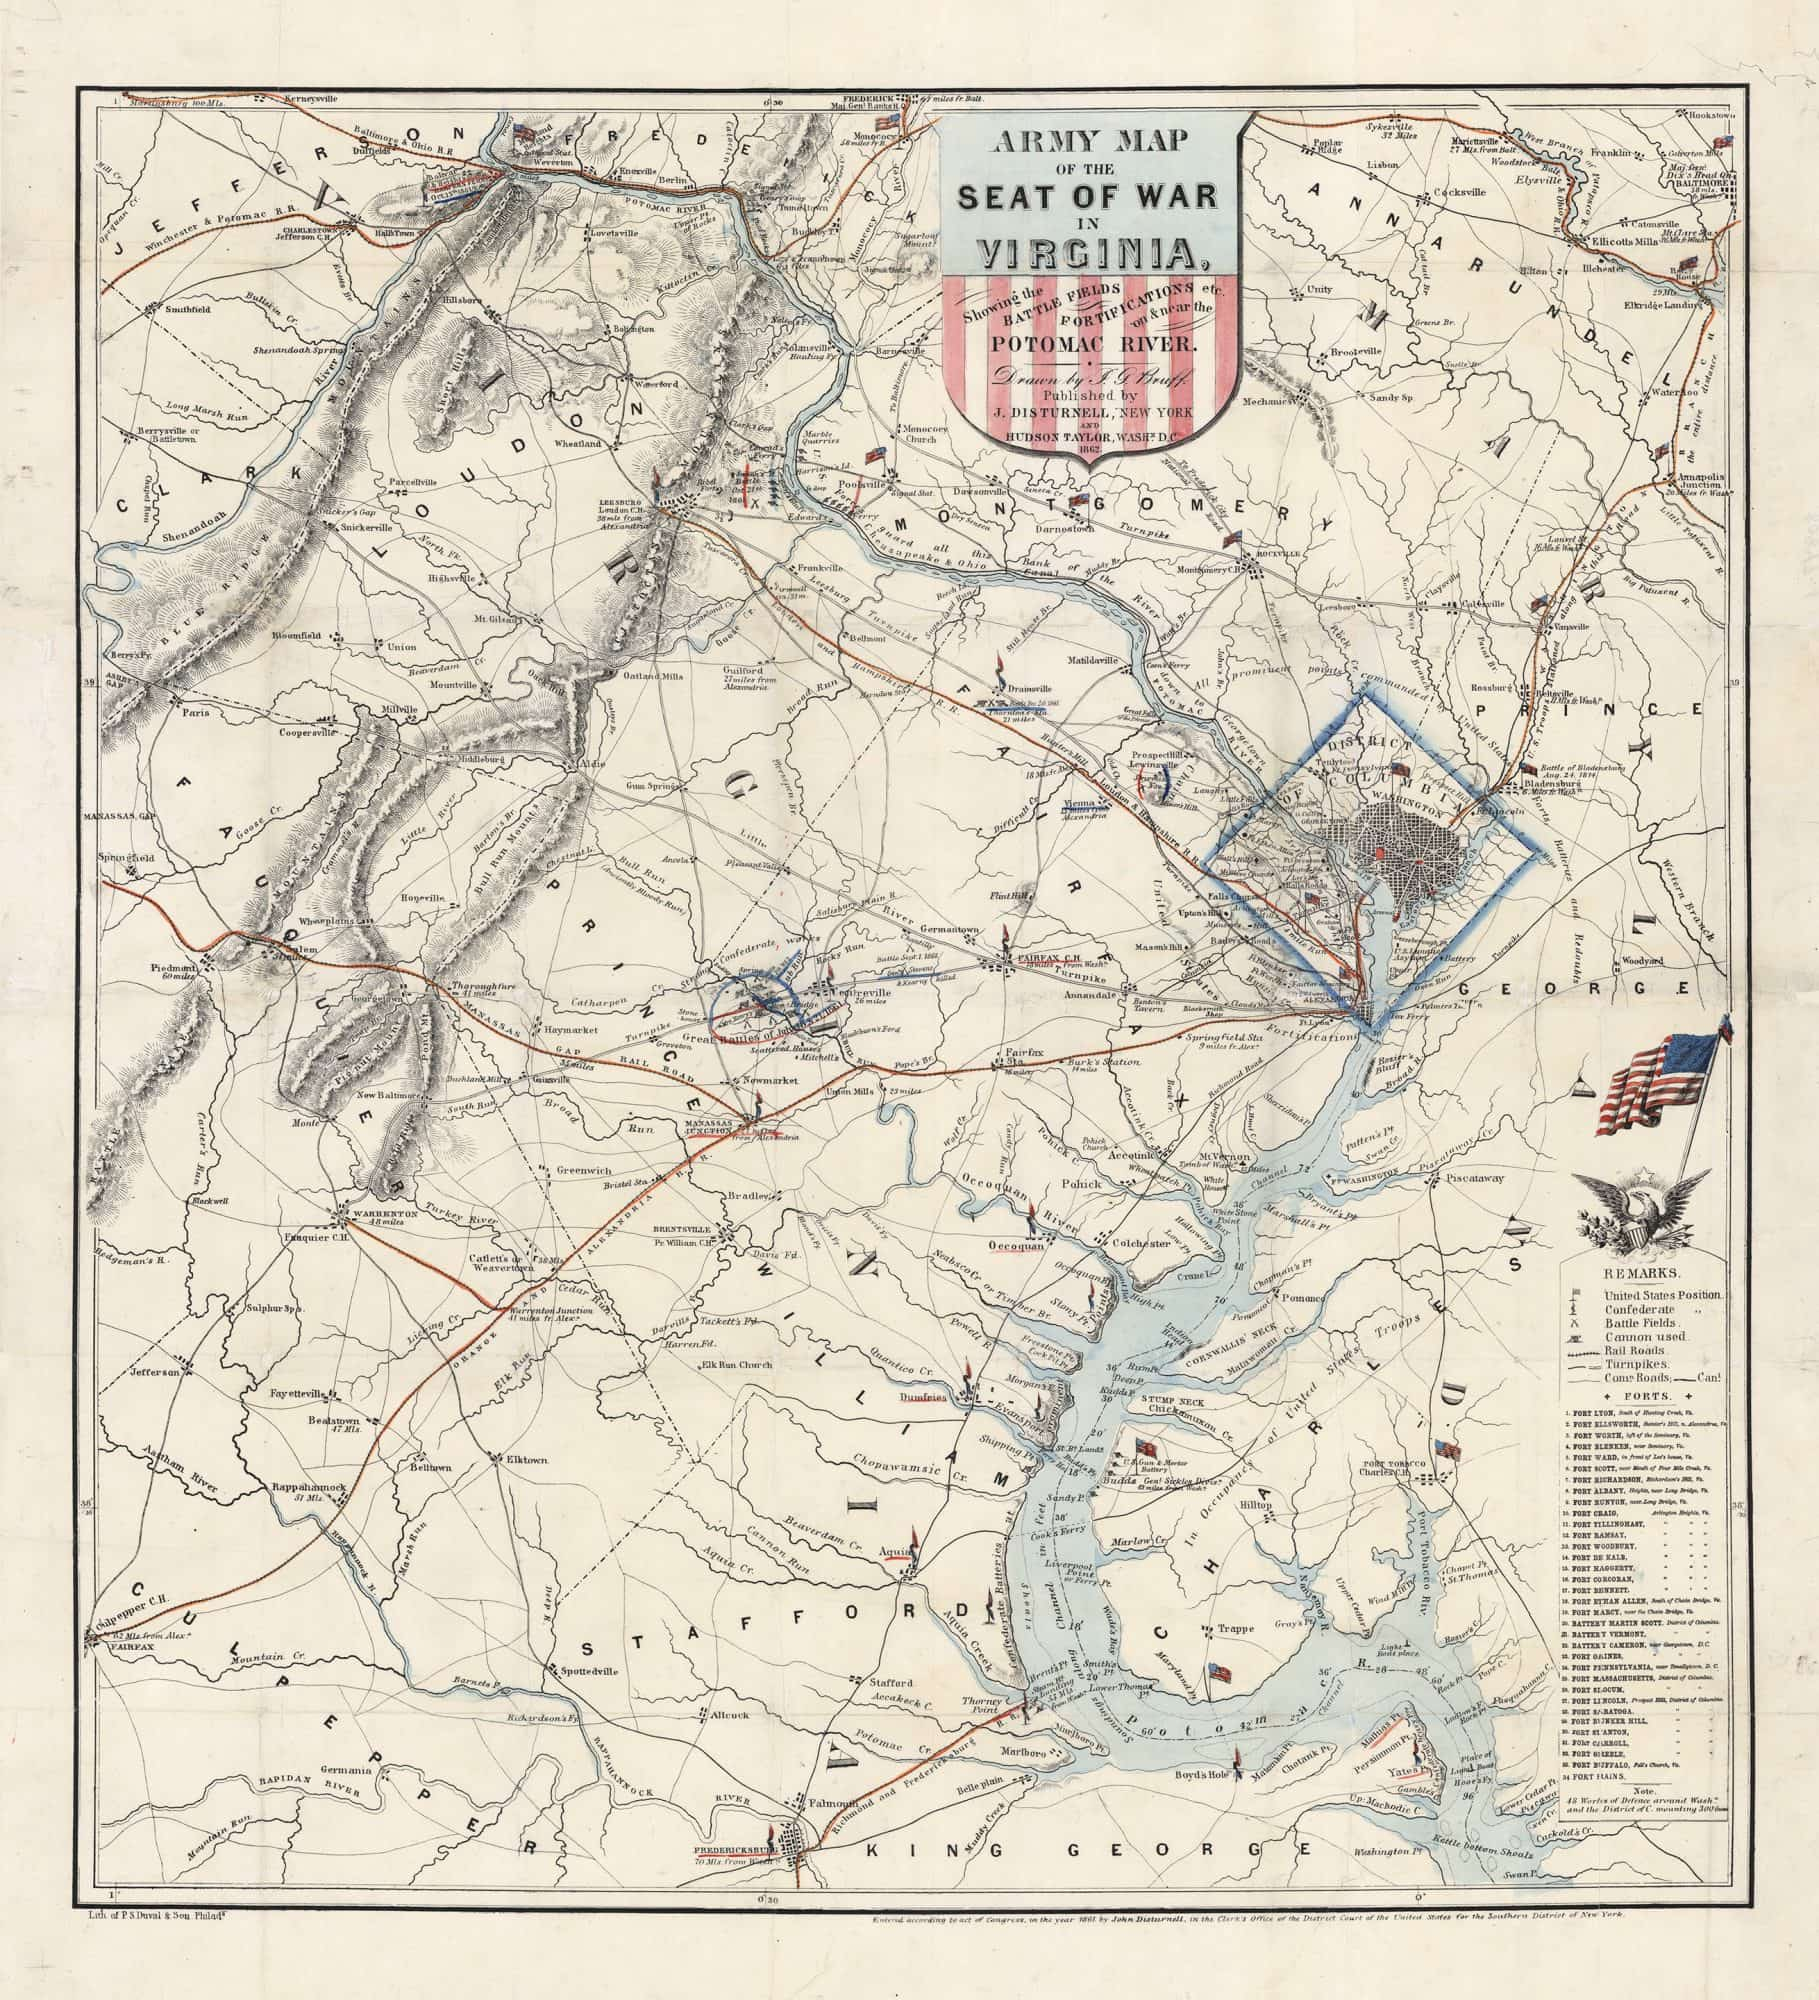 A Rare And Patriotic Map Of The Seat Of War In